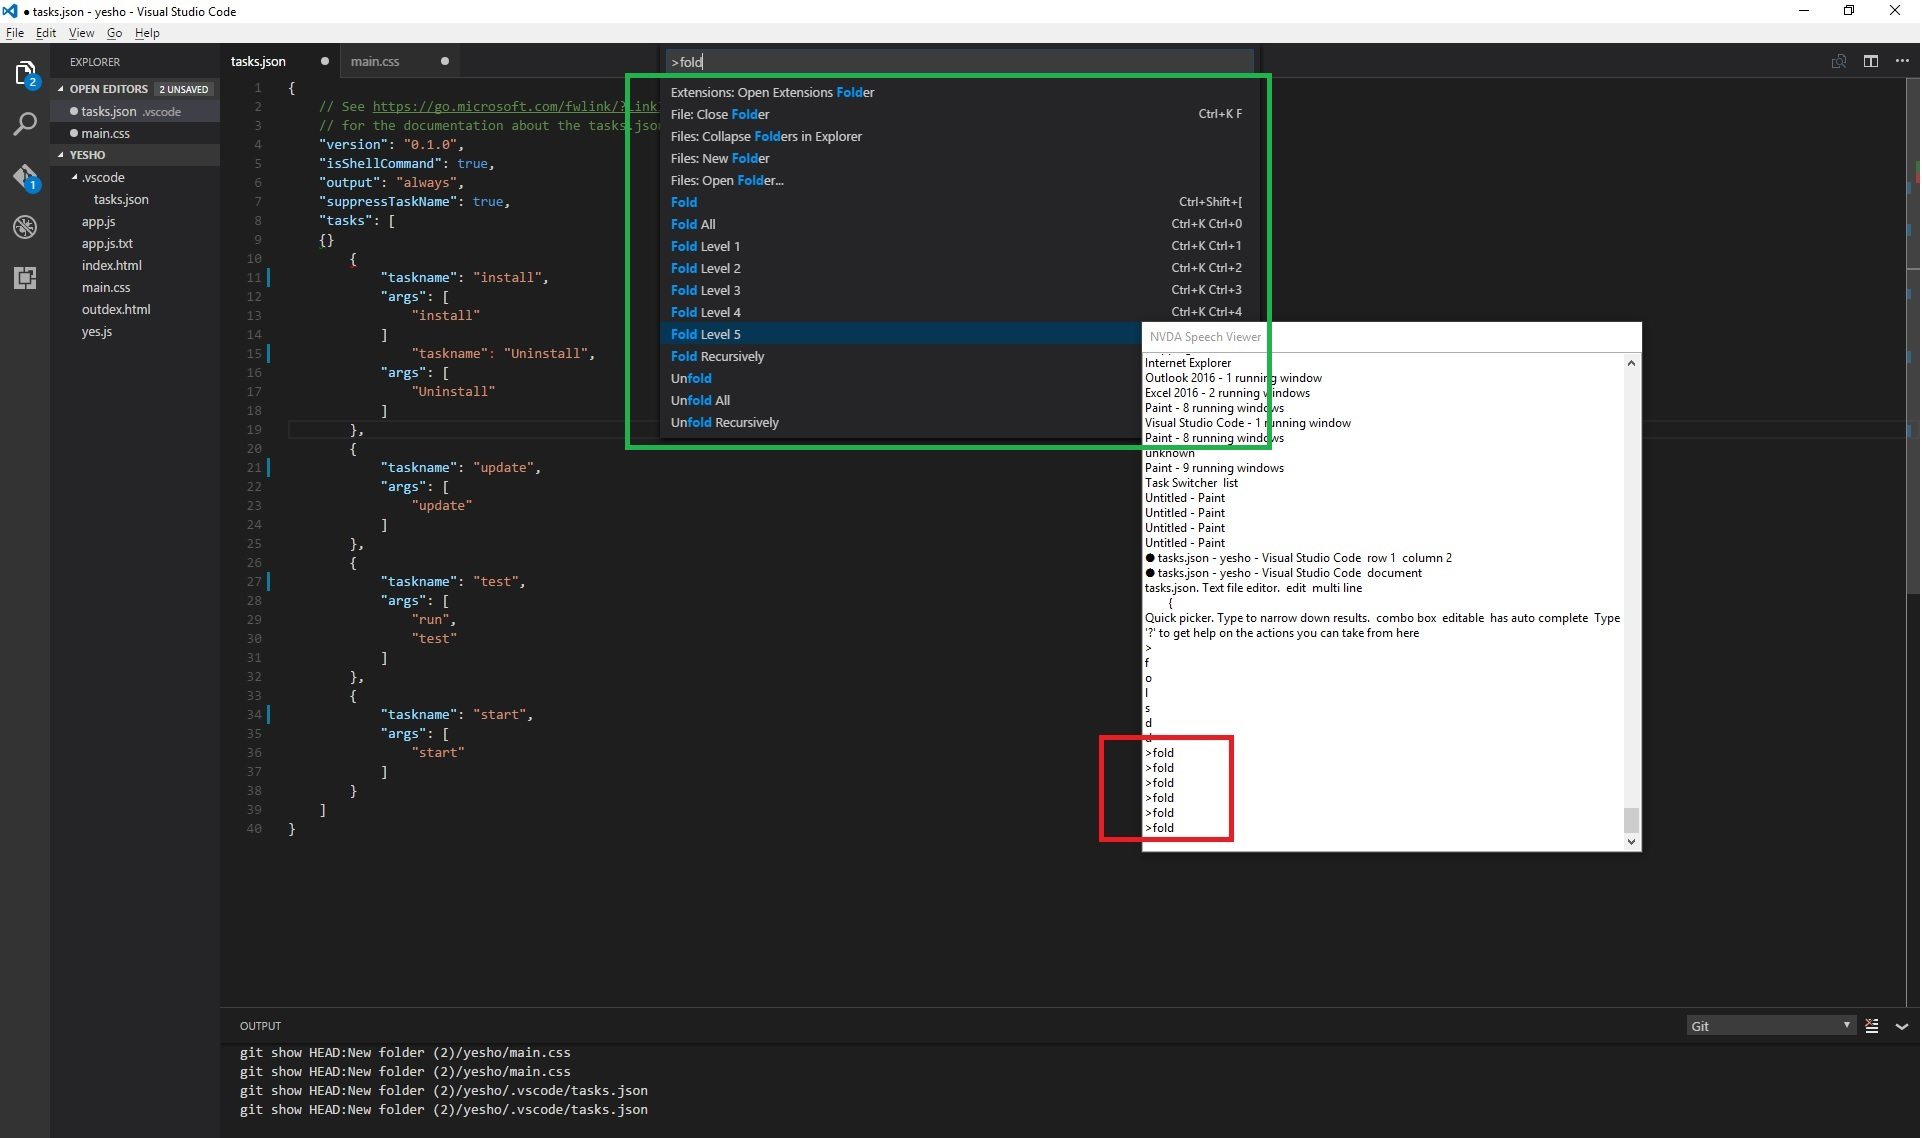 nvda announces the command in the command pallete for all options displayed by command pallete